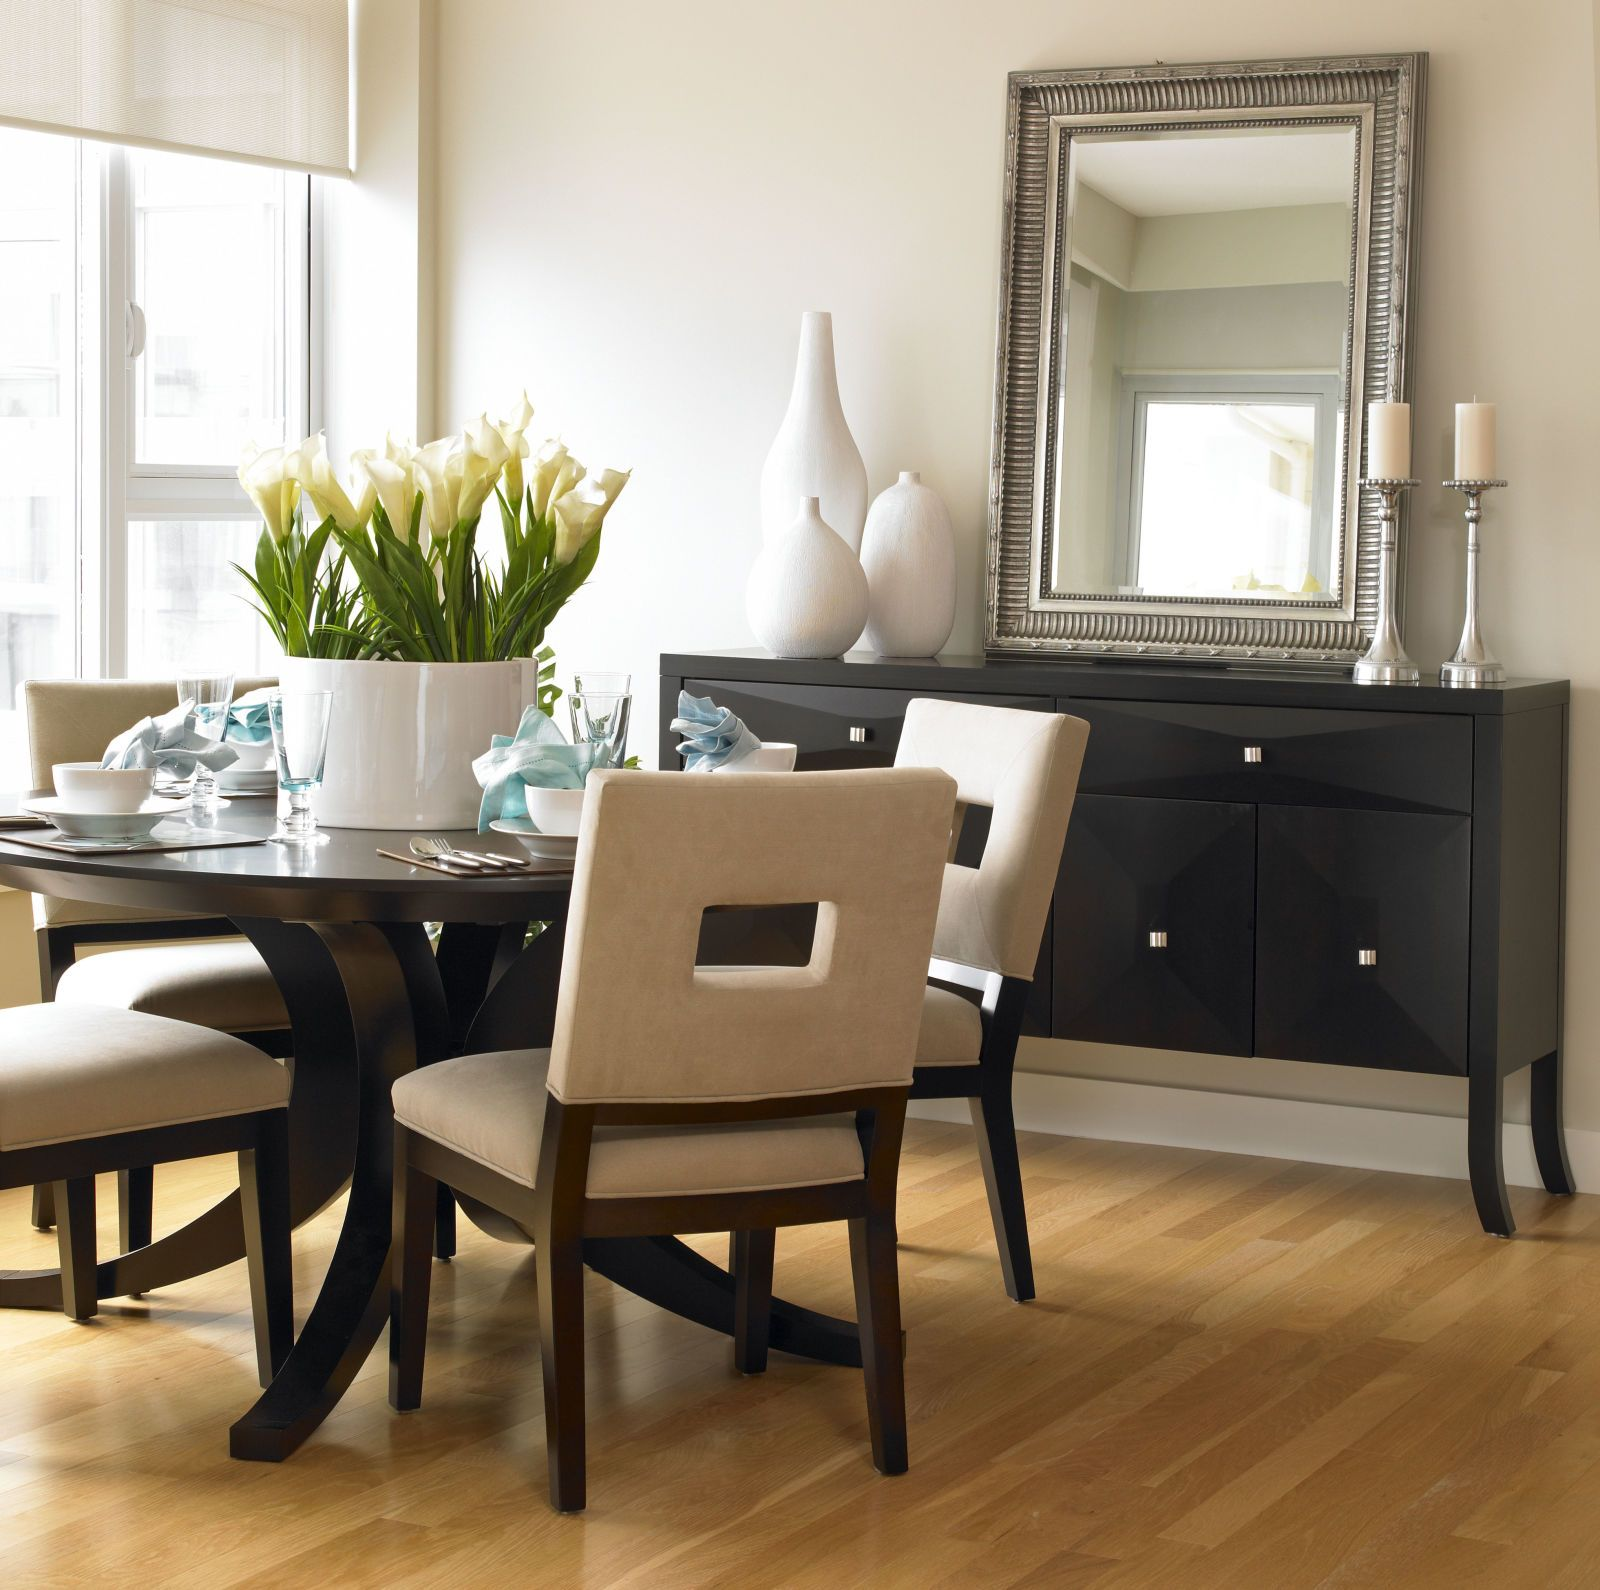 The Very Good Reason Your Dining Room Could Use A Mirror  Room Amusing Mirror In The Dining Room Inspiration Design